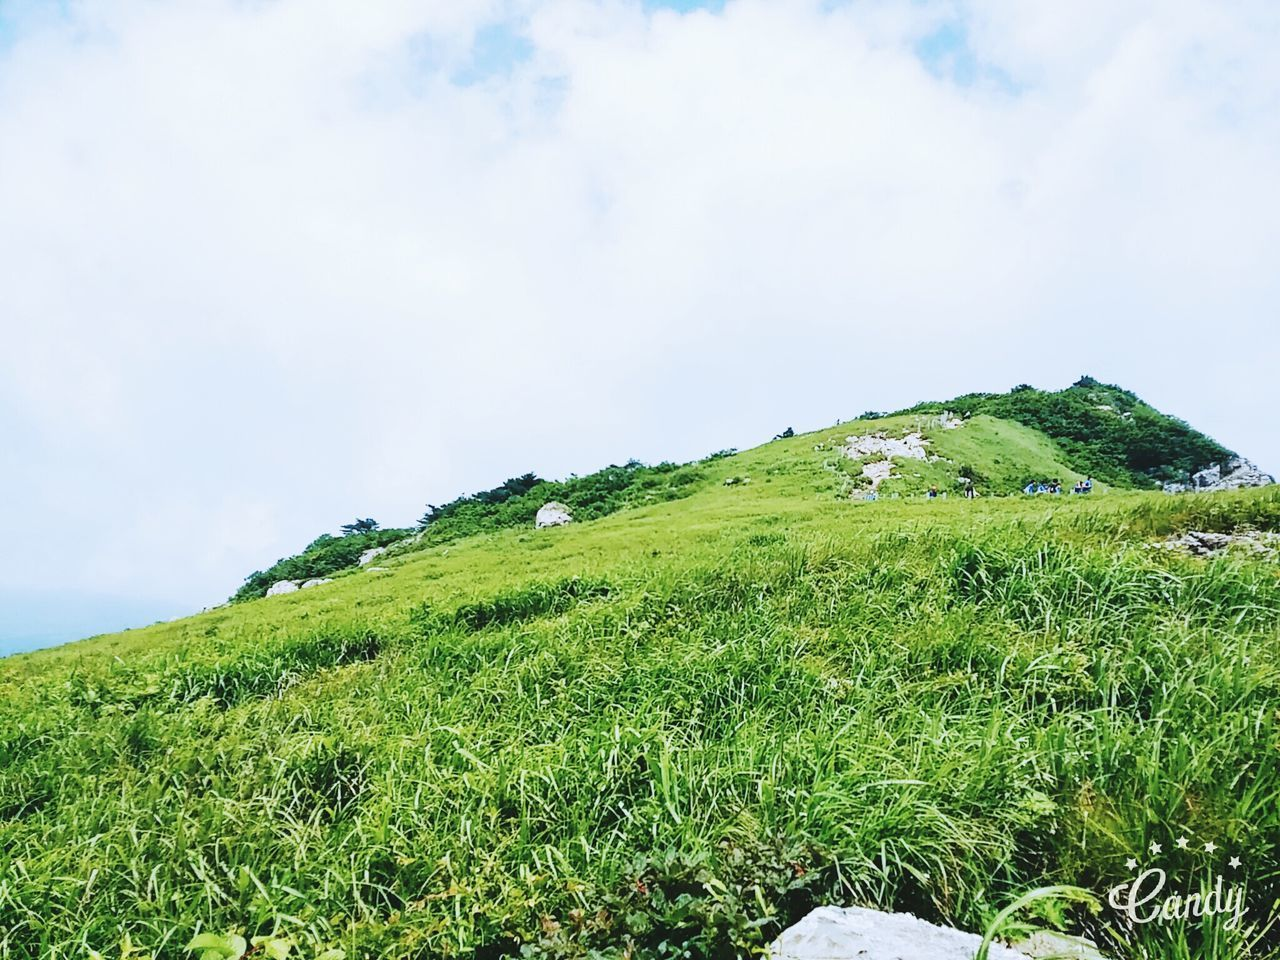 green color, nature, beauty in nature, tranquil scene, scenics, tranquility, grass, sky, cloud - sky, mountain, landscape, no people, growth, day, field, outdoors, lush foliage, plant, slope, rural scene, animal themes